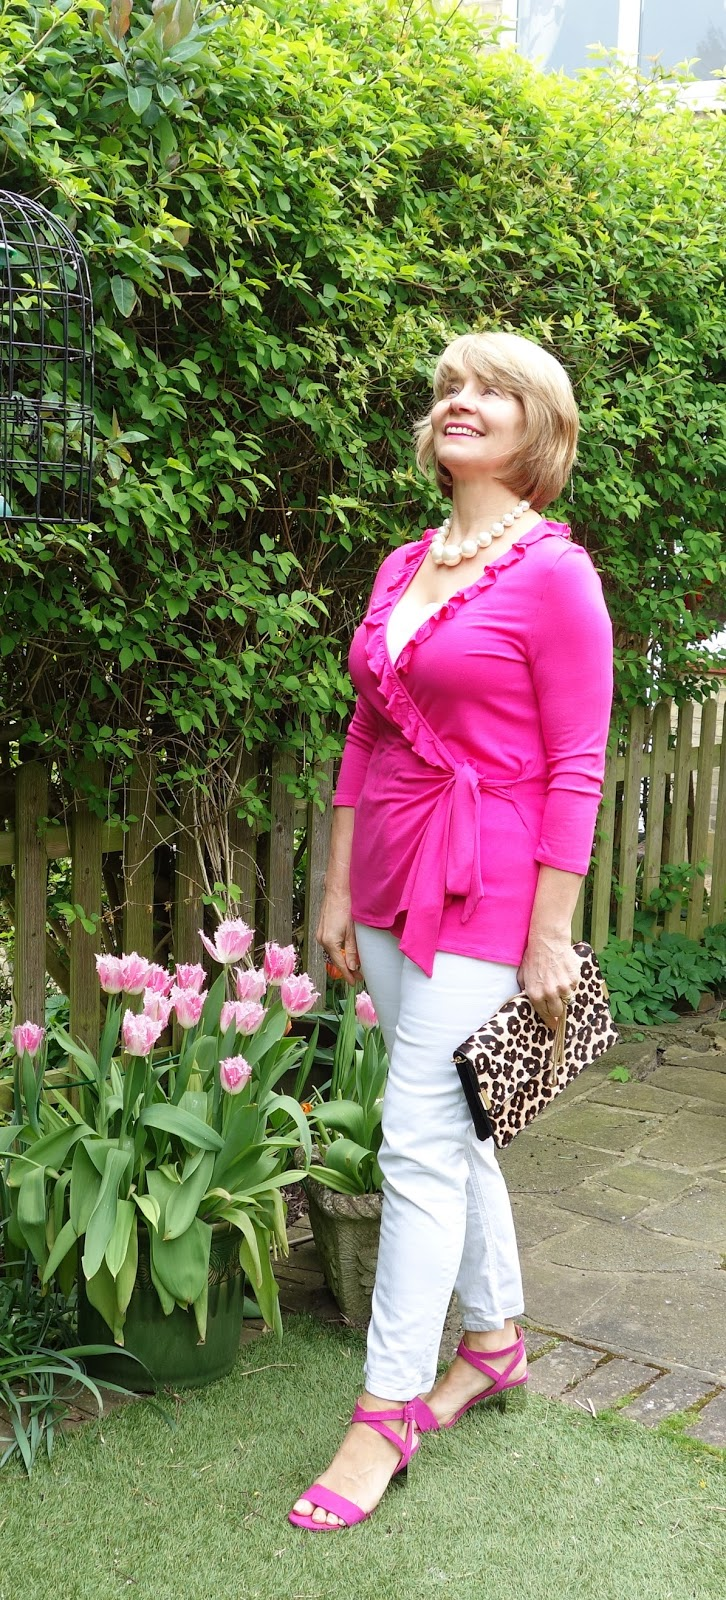 Wearing fuchsia pink top and sandals with an animal print clutch and pink tulips